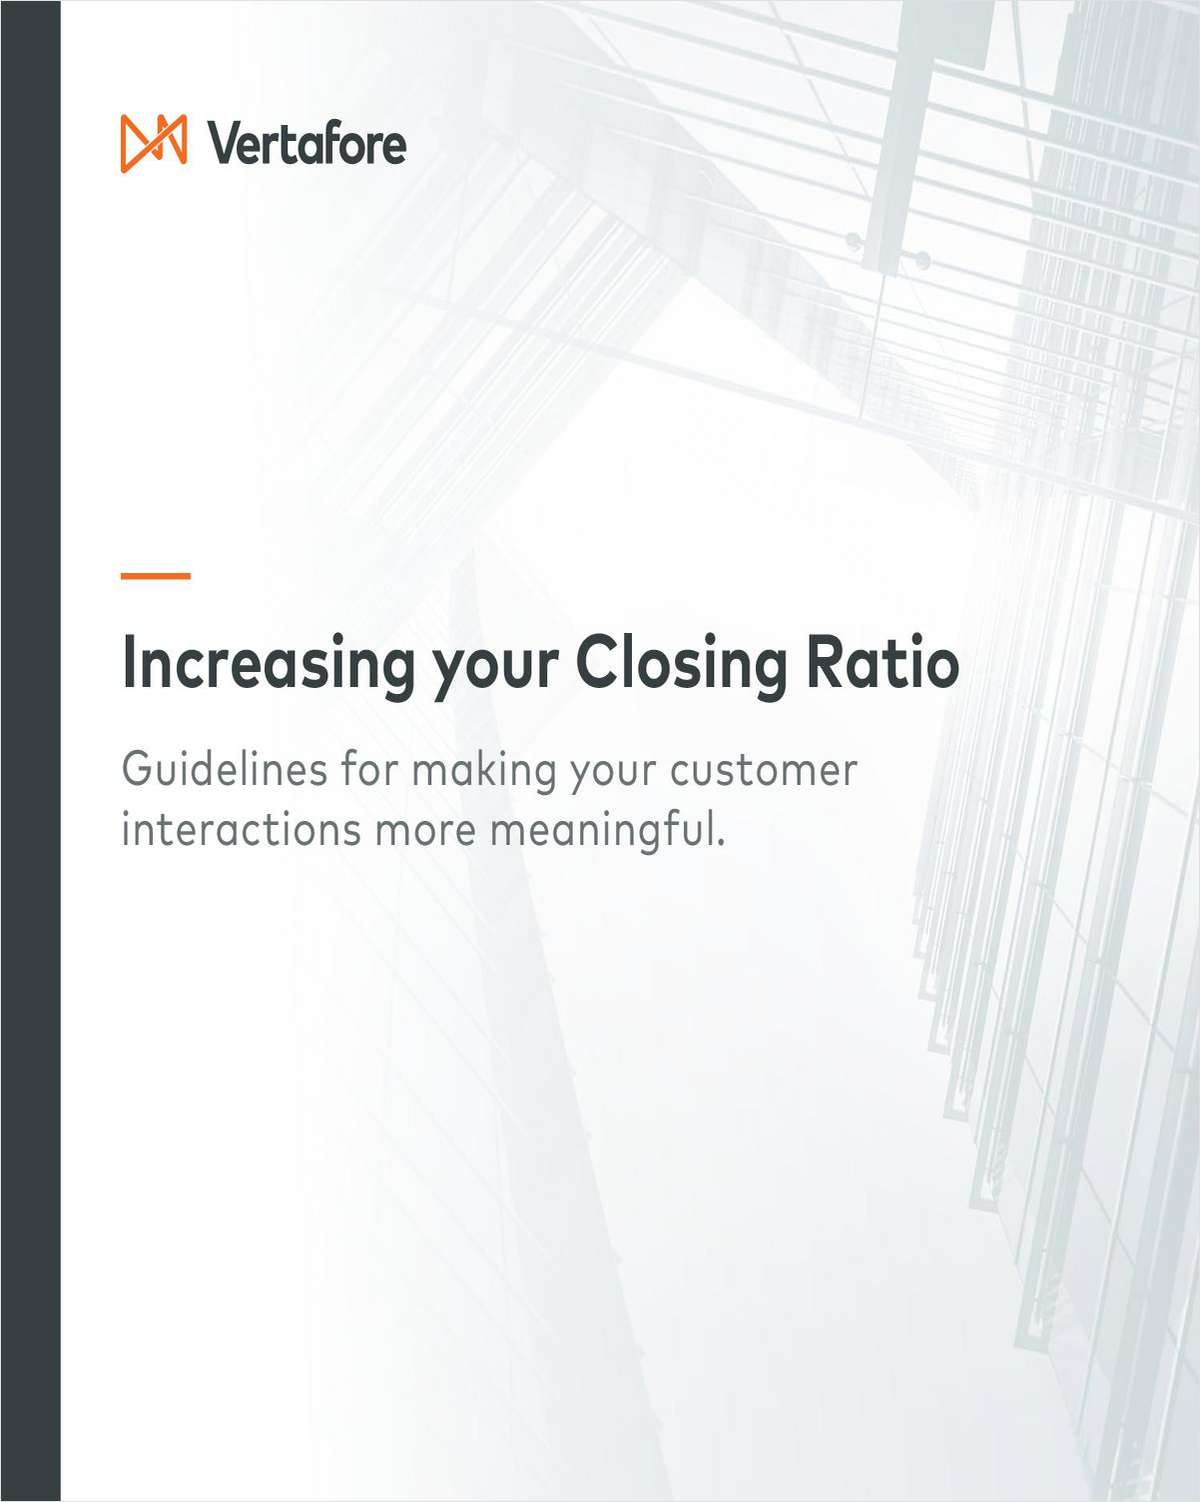 Increasing Your Closing Ratio: Guidelines for Making Your Customer Interactions More Meaningful